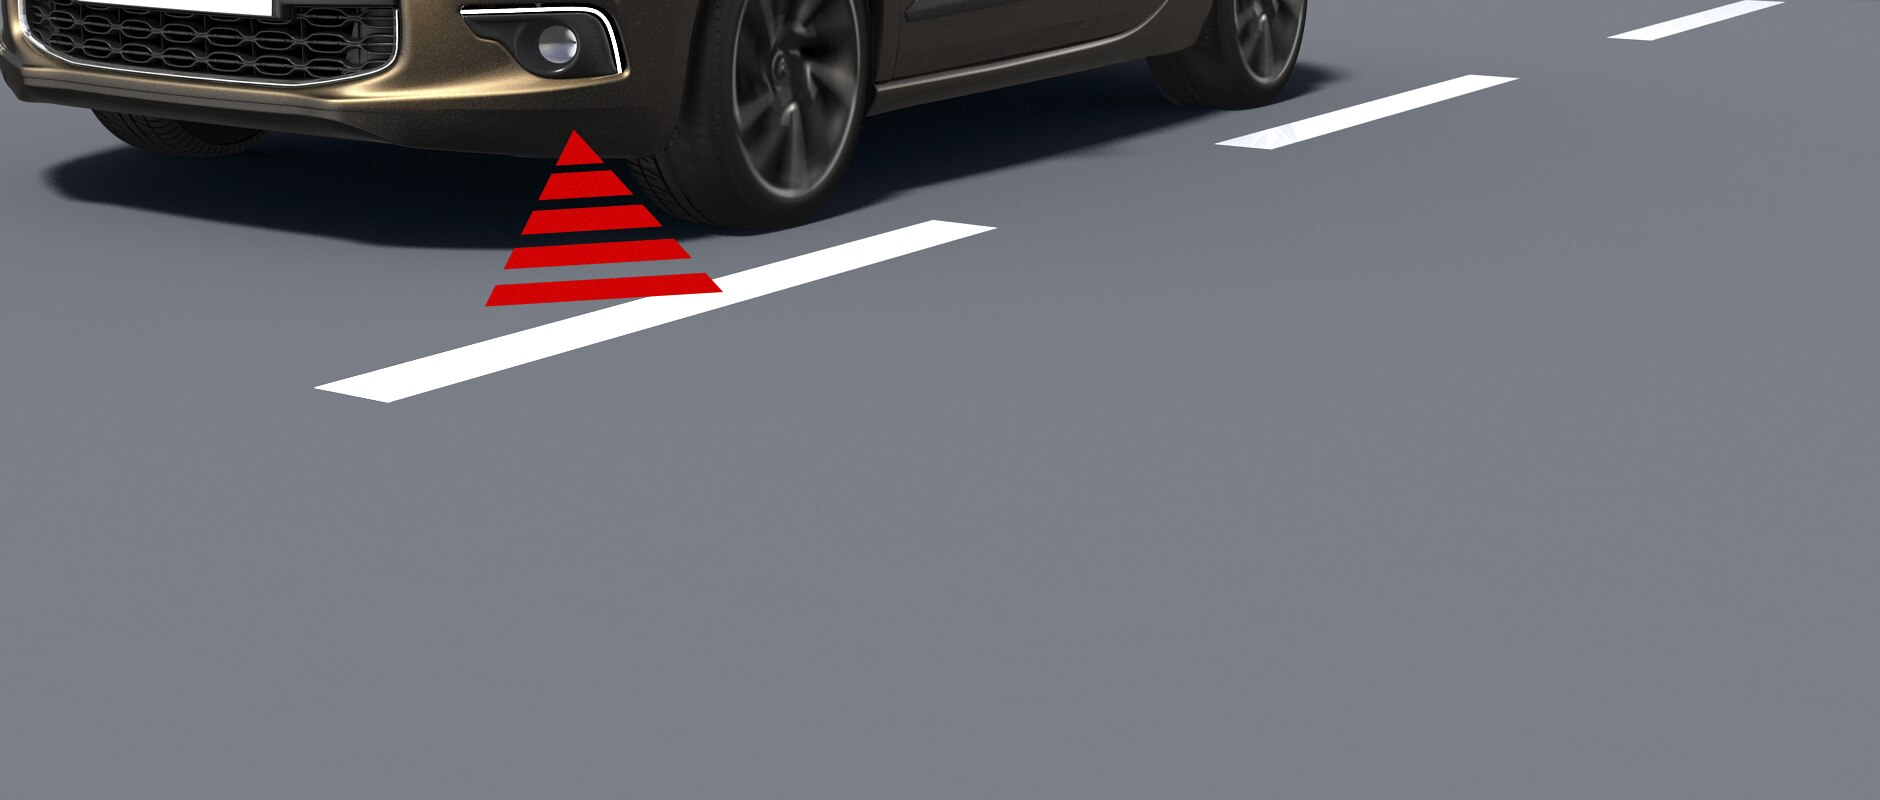 DS 4 Crossback - détails - Technology for safety